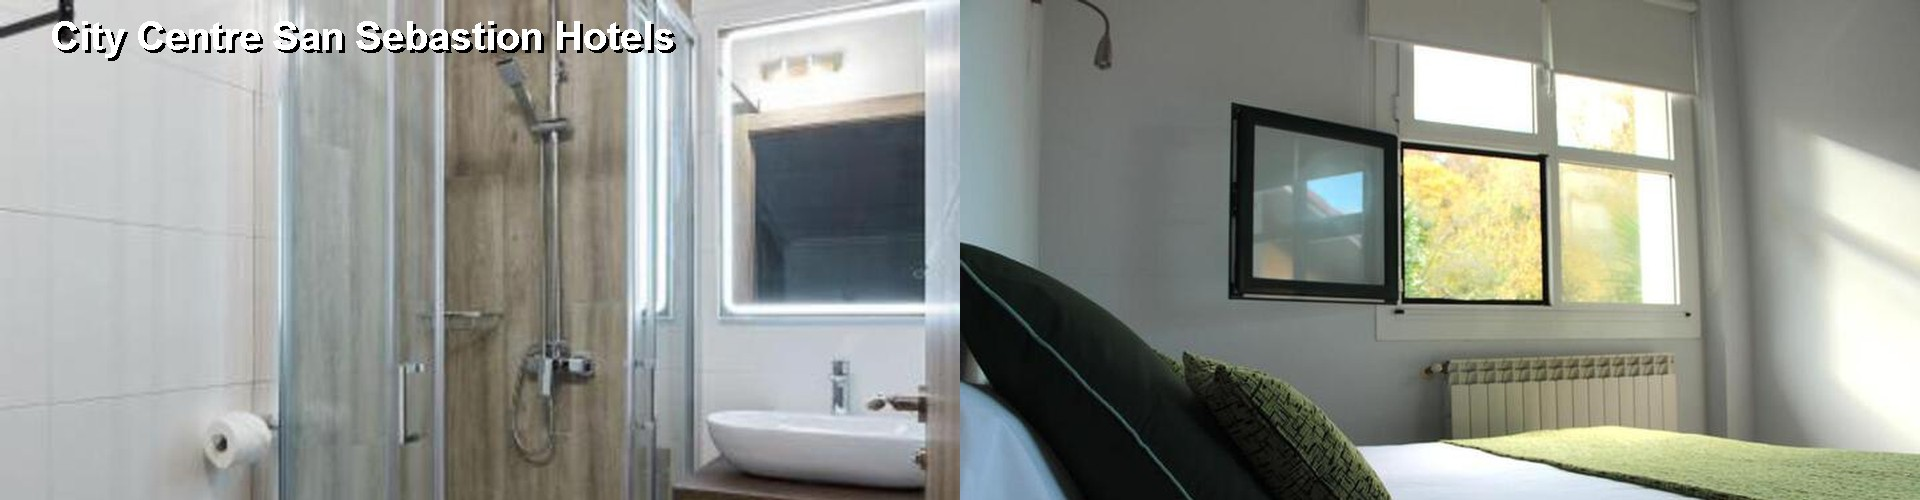 5 Best Hotels near City Centre San Sebastion